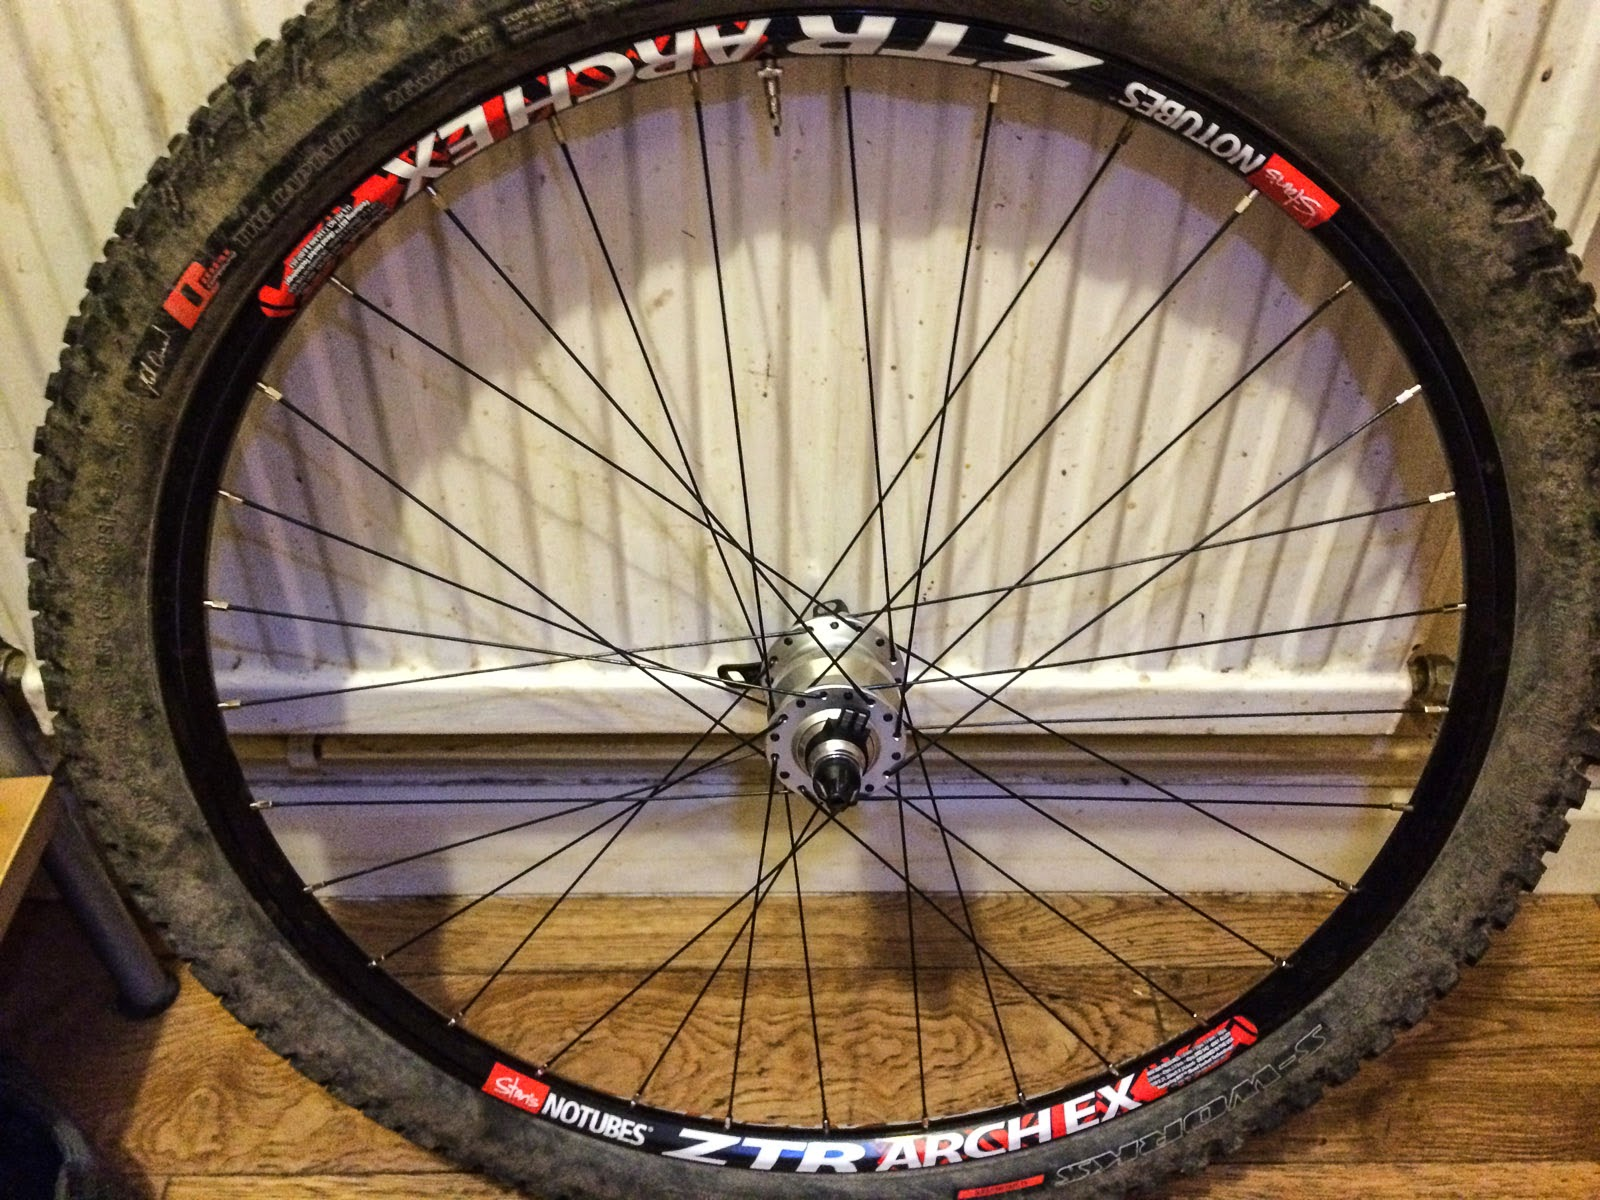 Photo: the finished wheel fitted with some dirty ol' rubber!